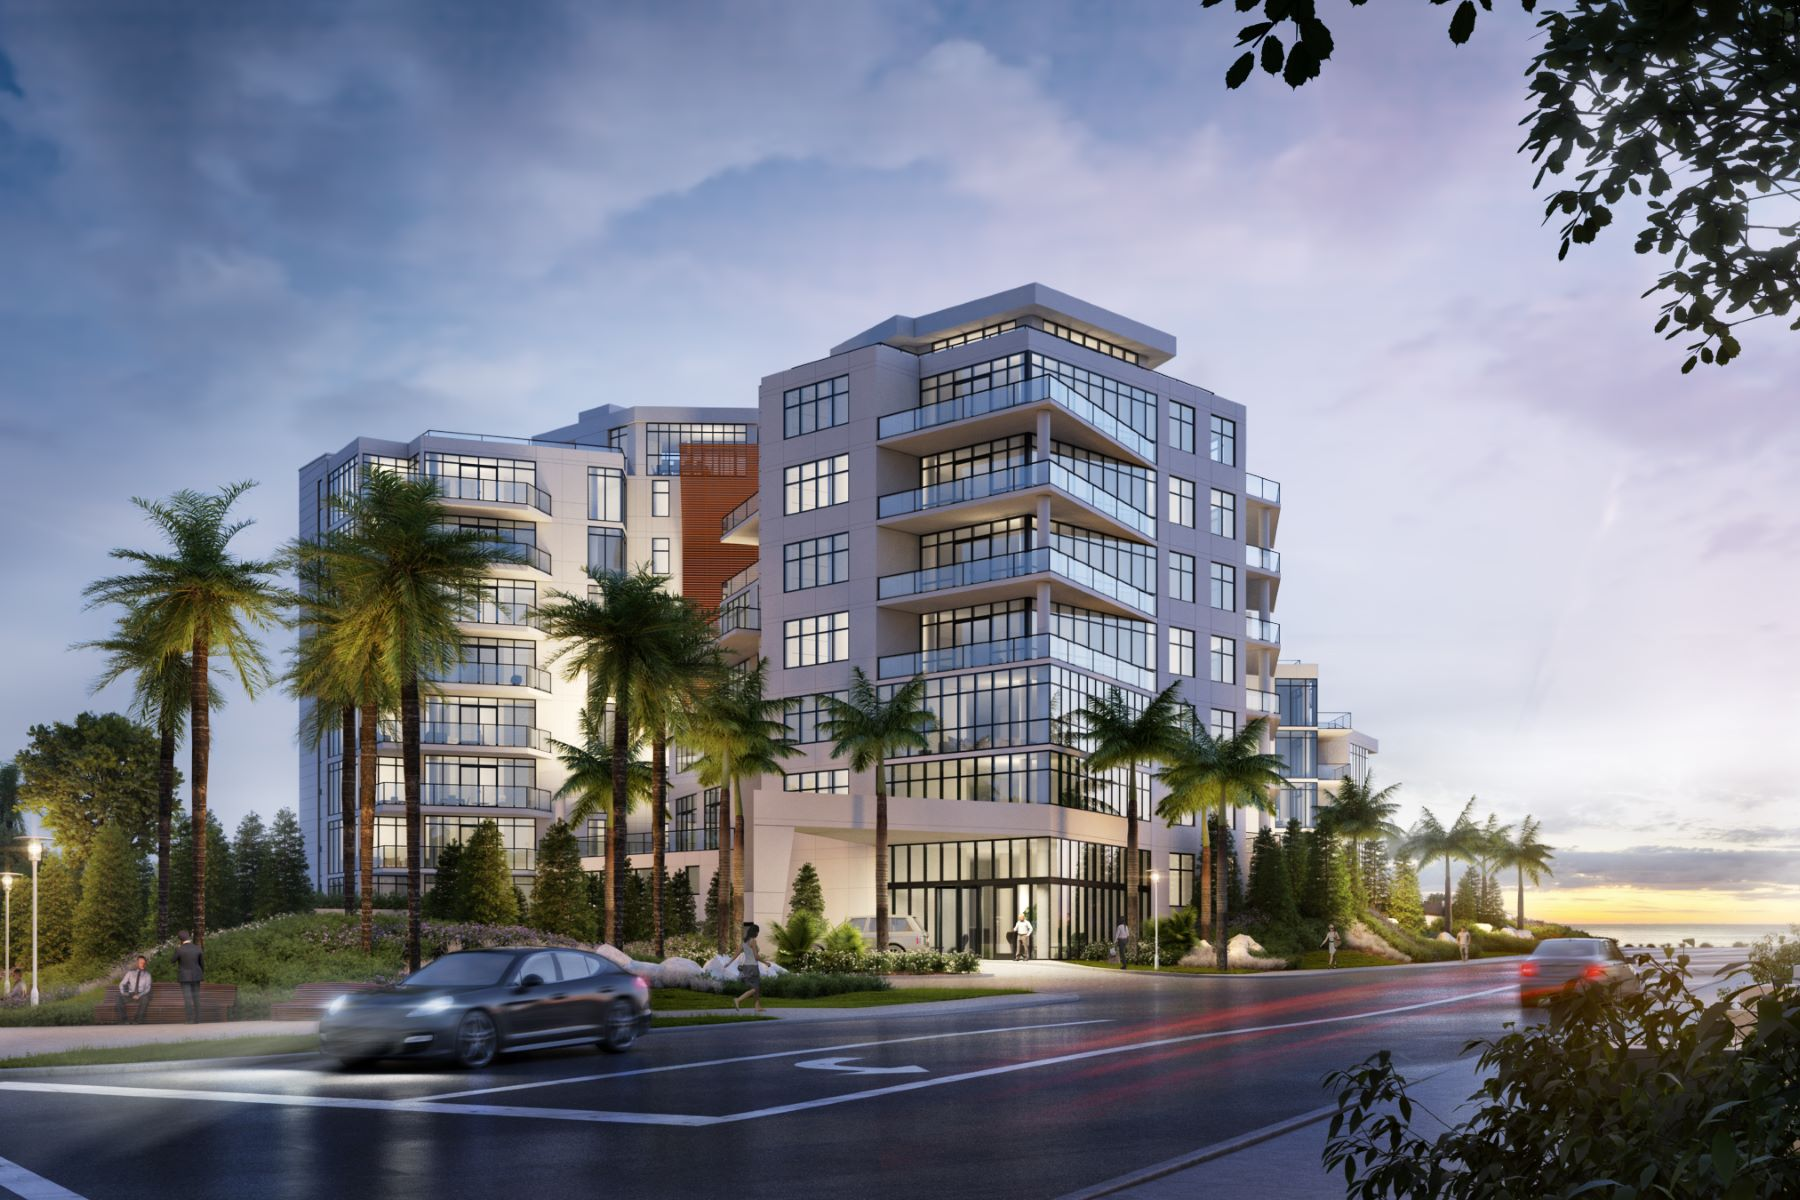 Condominiums للـ Sale في South Beach at Long Branch 350 Ocean Avenue 504, Long Branch, New Jersey 07740 United States